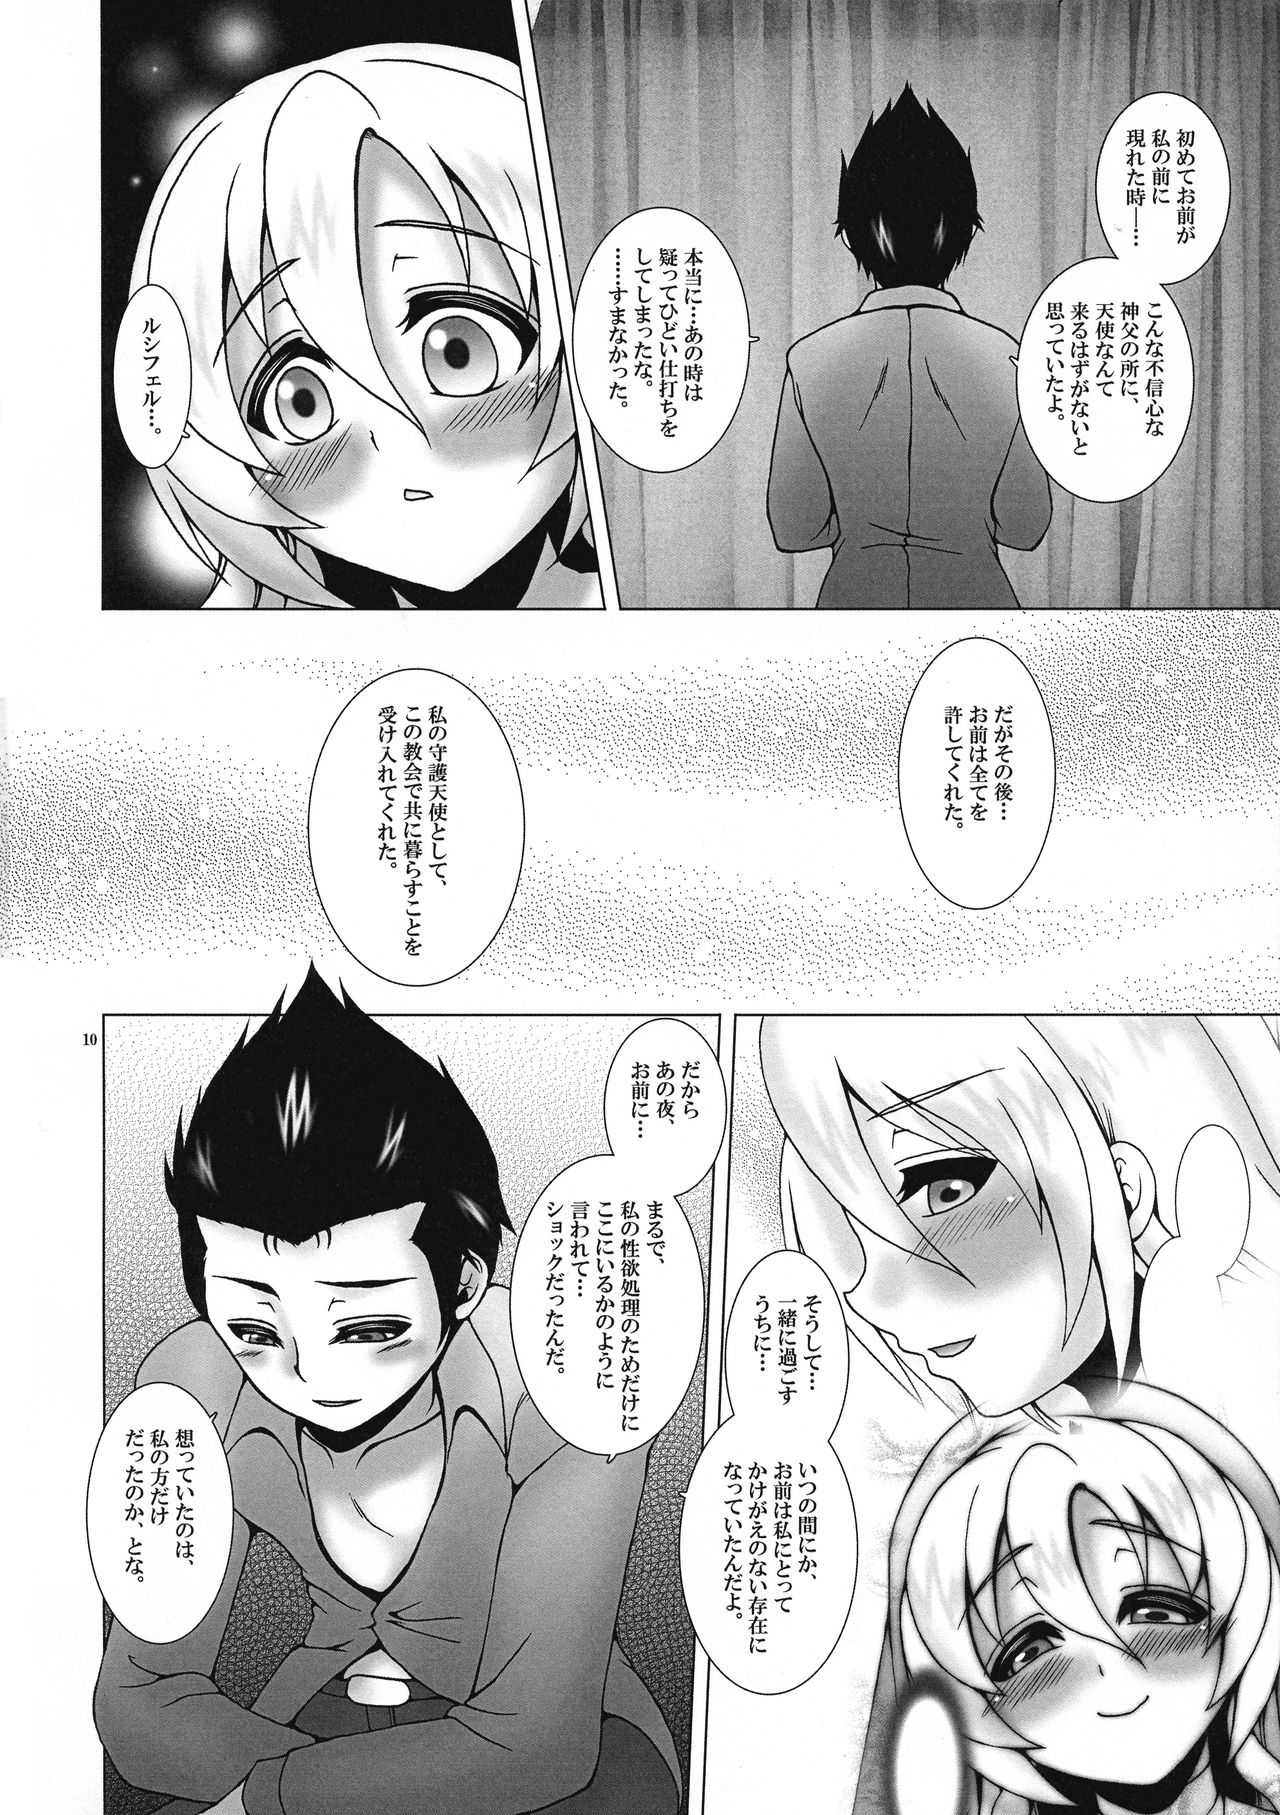 (C93) [Daifuku (Shouki)] Kono Kyoukai ni wa Tenshi ga Iru. 4 (El Shaddai: Ascension of the Metatron) page 10